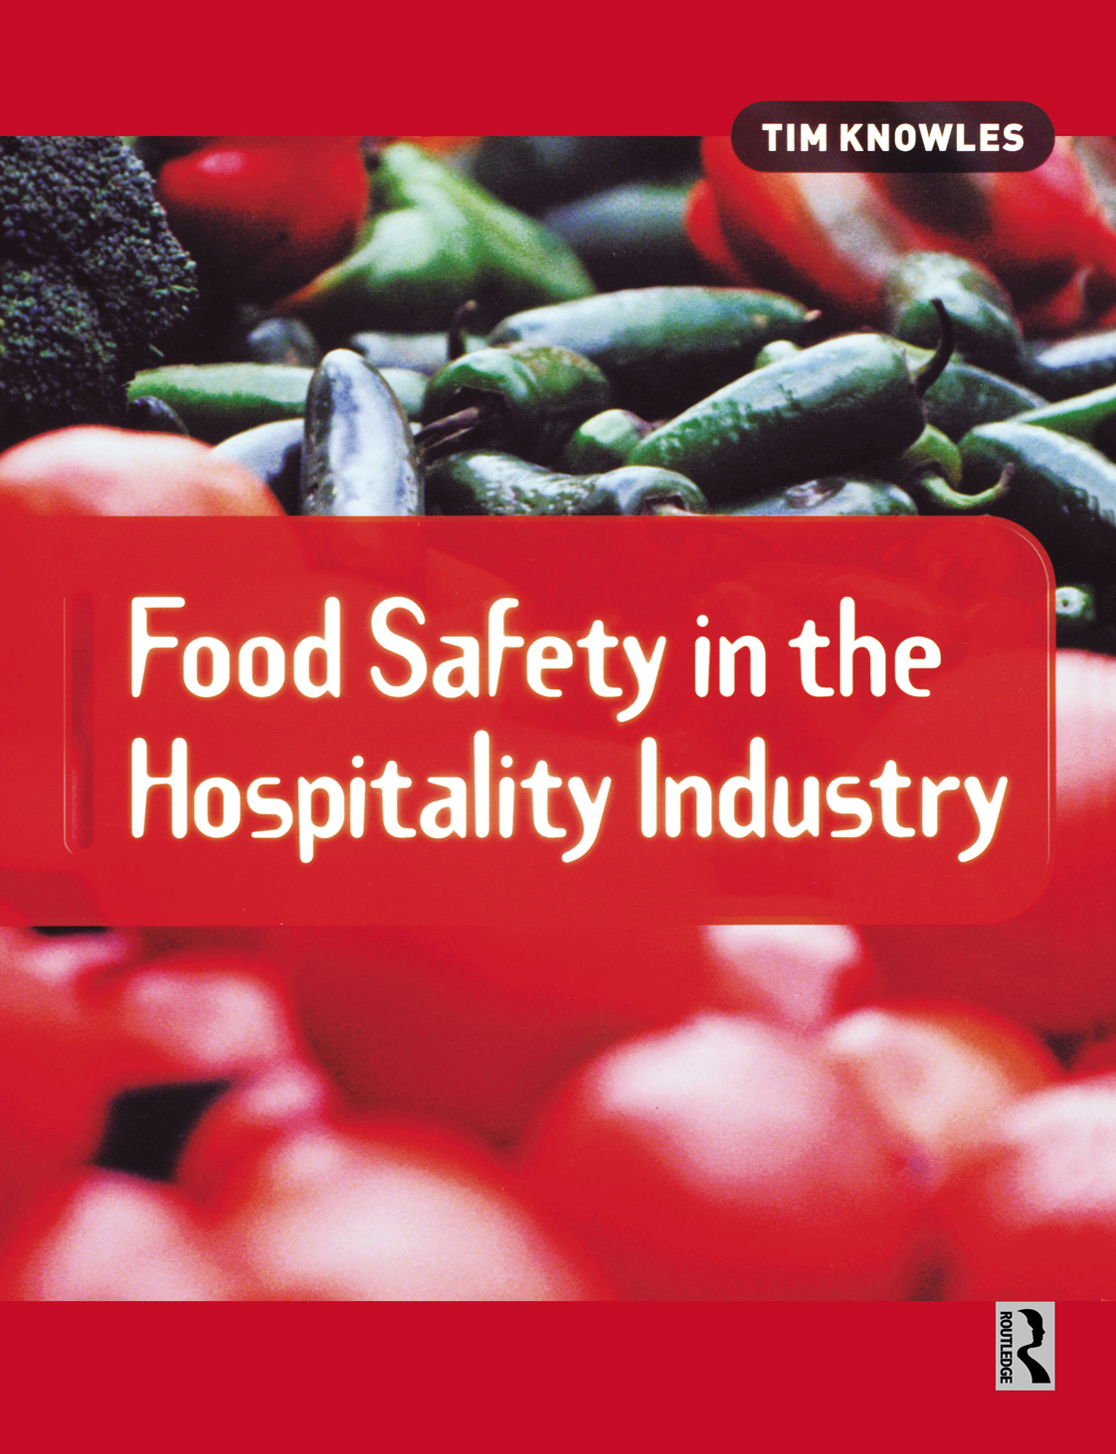 Download Ebook Food Safety in the Hospitality Industry by Tim Knowles Pdf